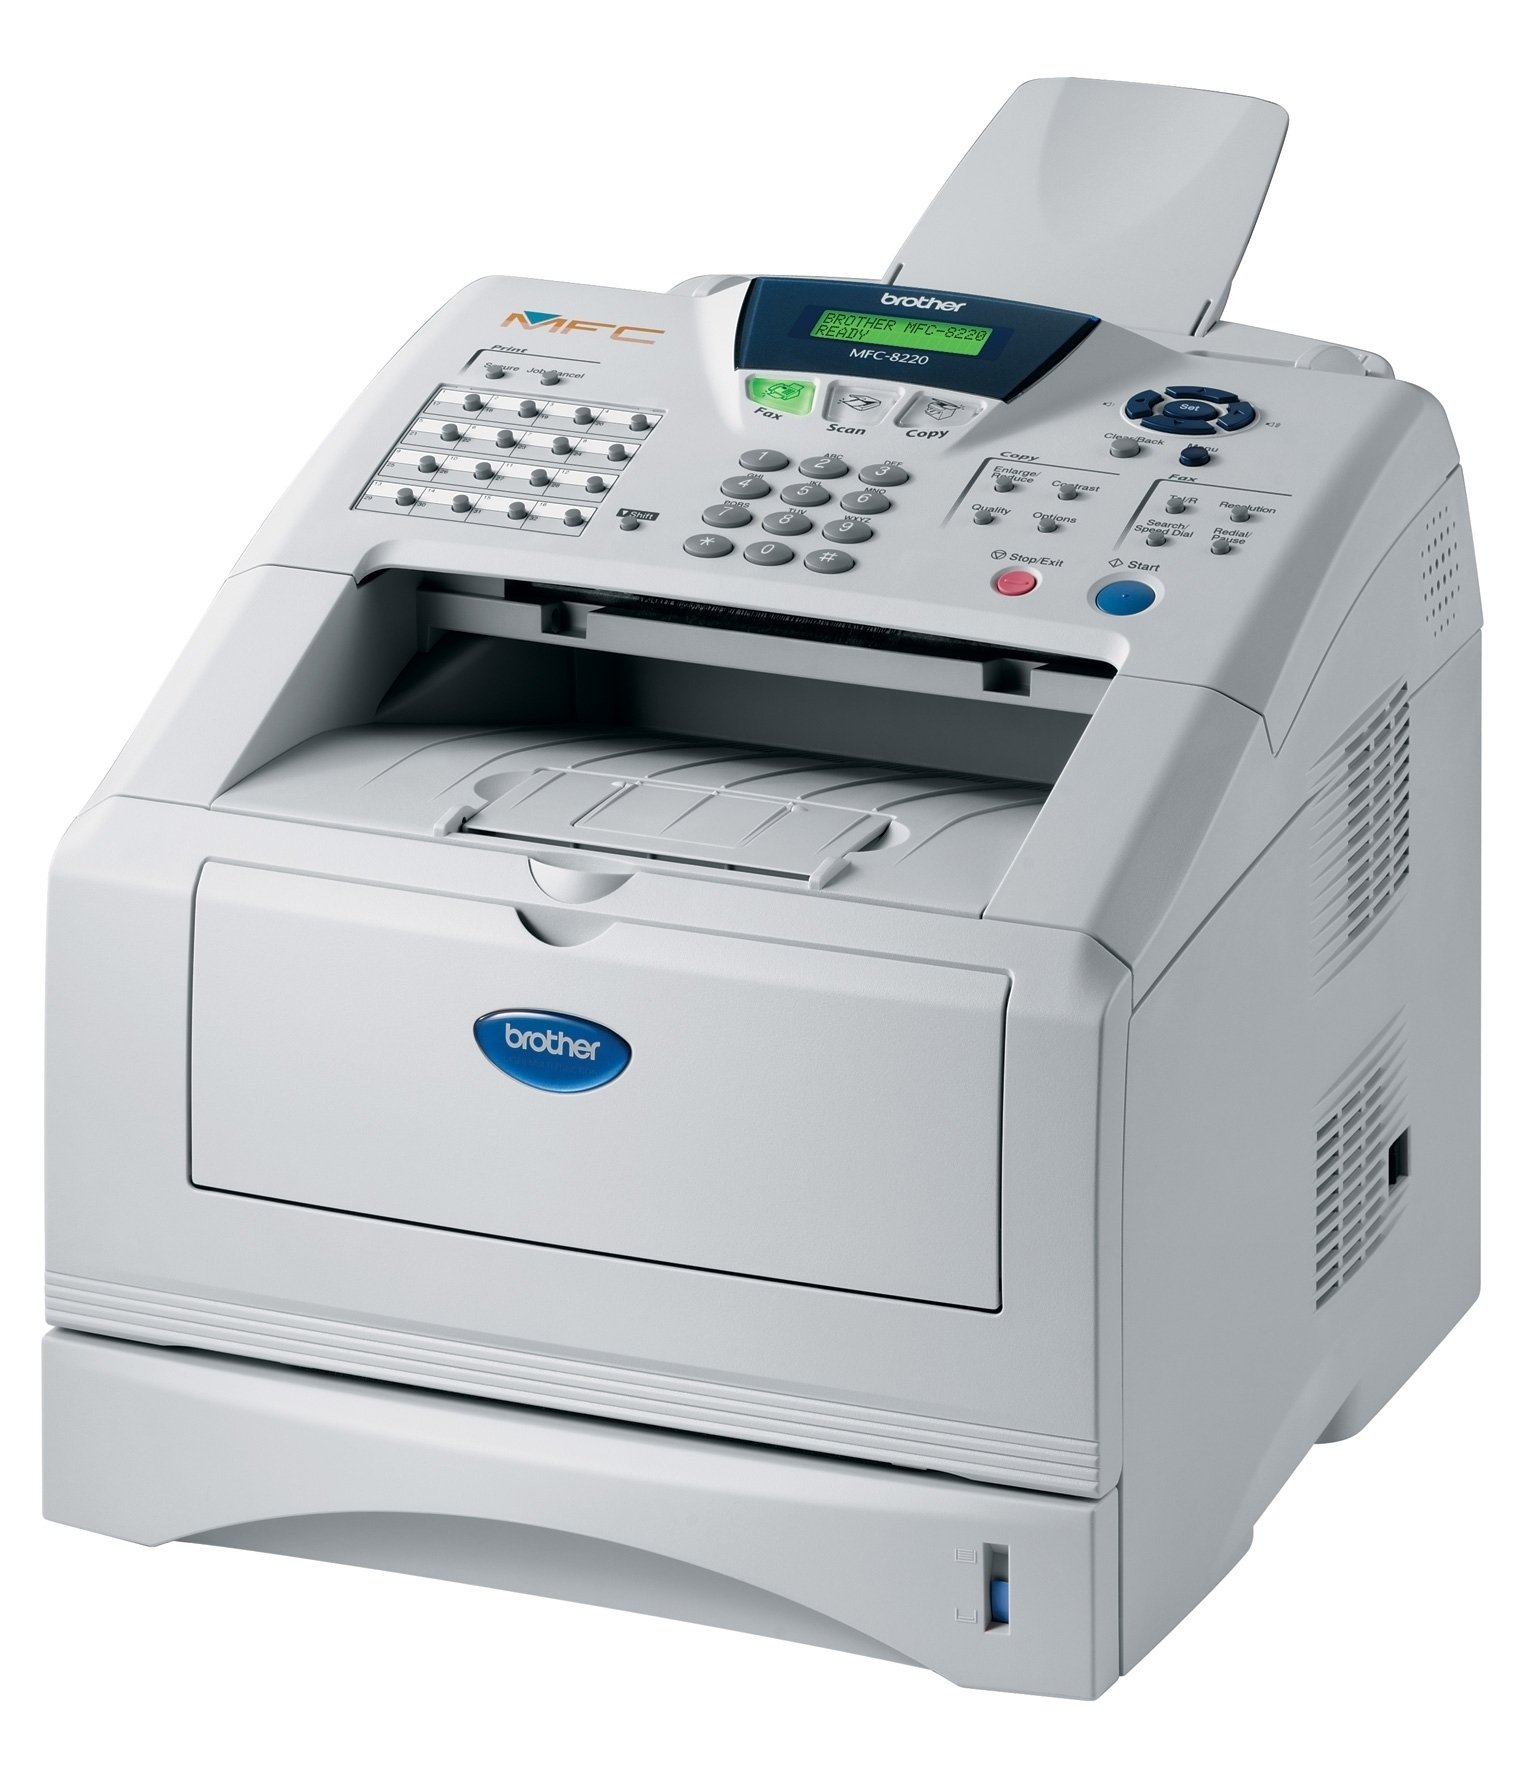 BRTMFC8220 - MFC-8220 Plain Paper Laser Fax/Printer/Scanner/Copier/PC Fax/Telephone by BROTHR